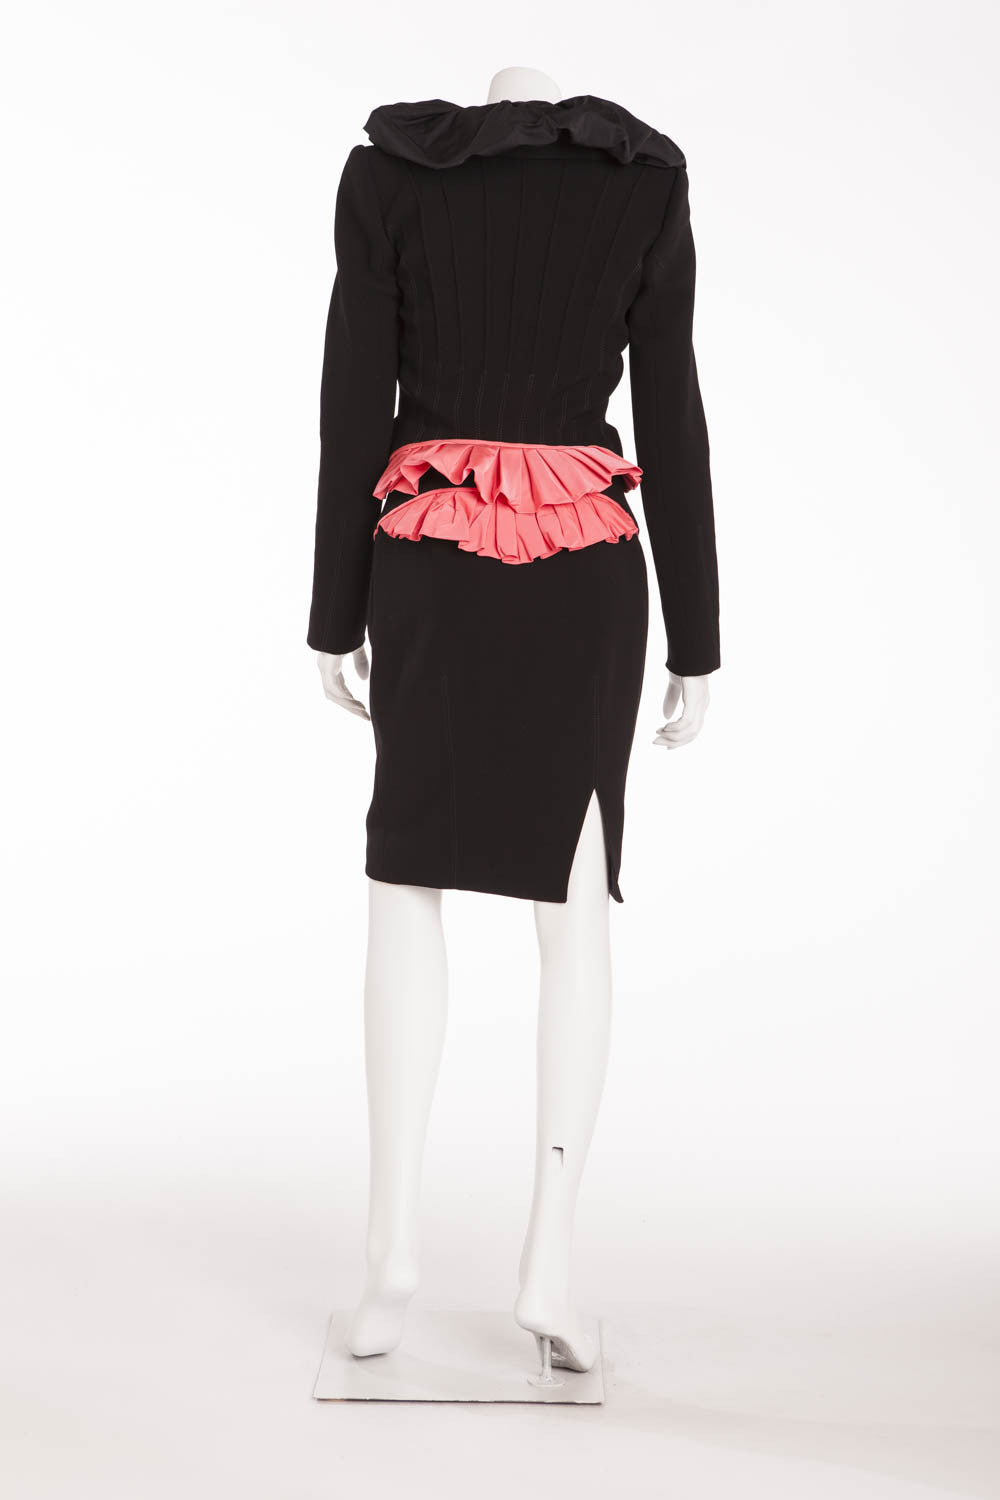 Louis Vuitton - Iconic 2PC Black Blazer and Skirt Suit with Pink Trim - FR 38